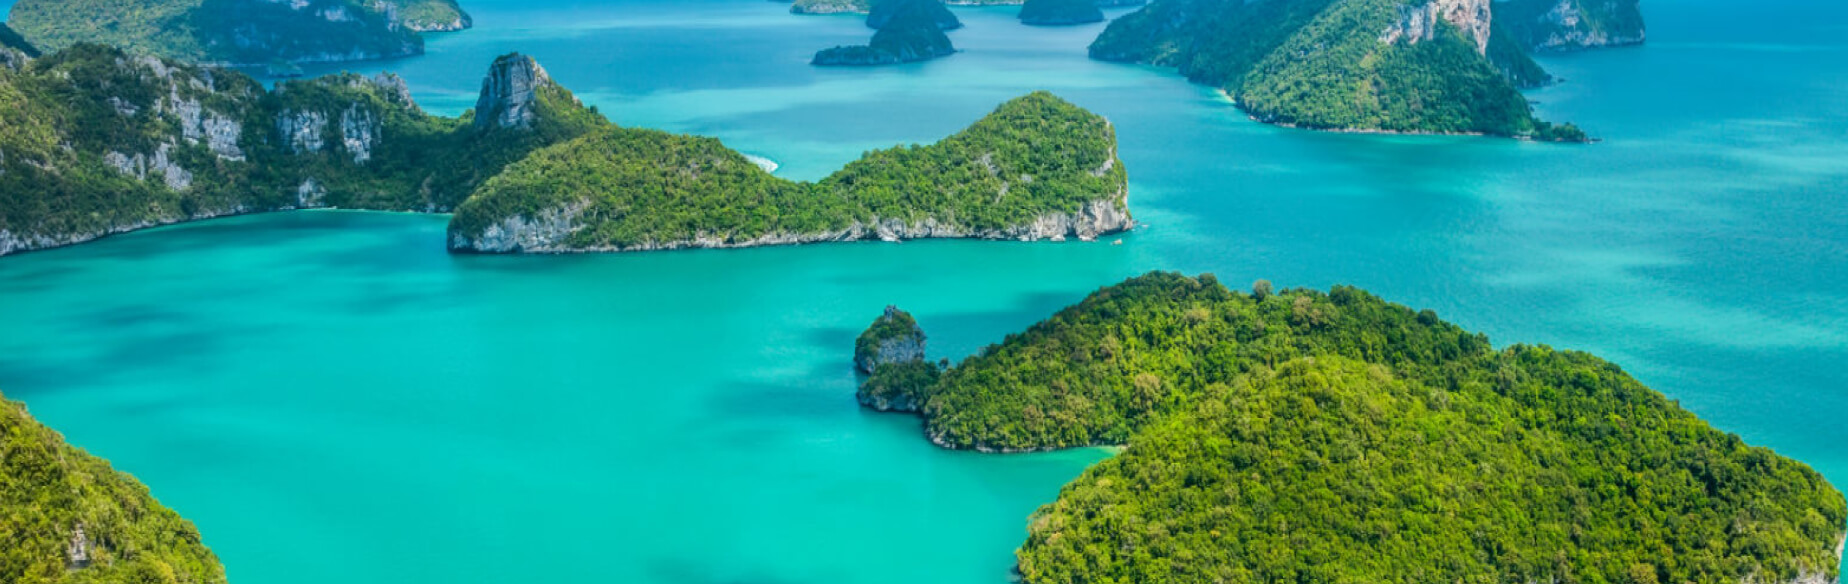 Green islands and blue water in Koh Samui, Thailand